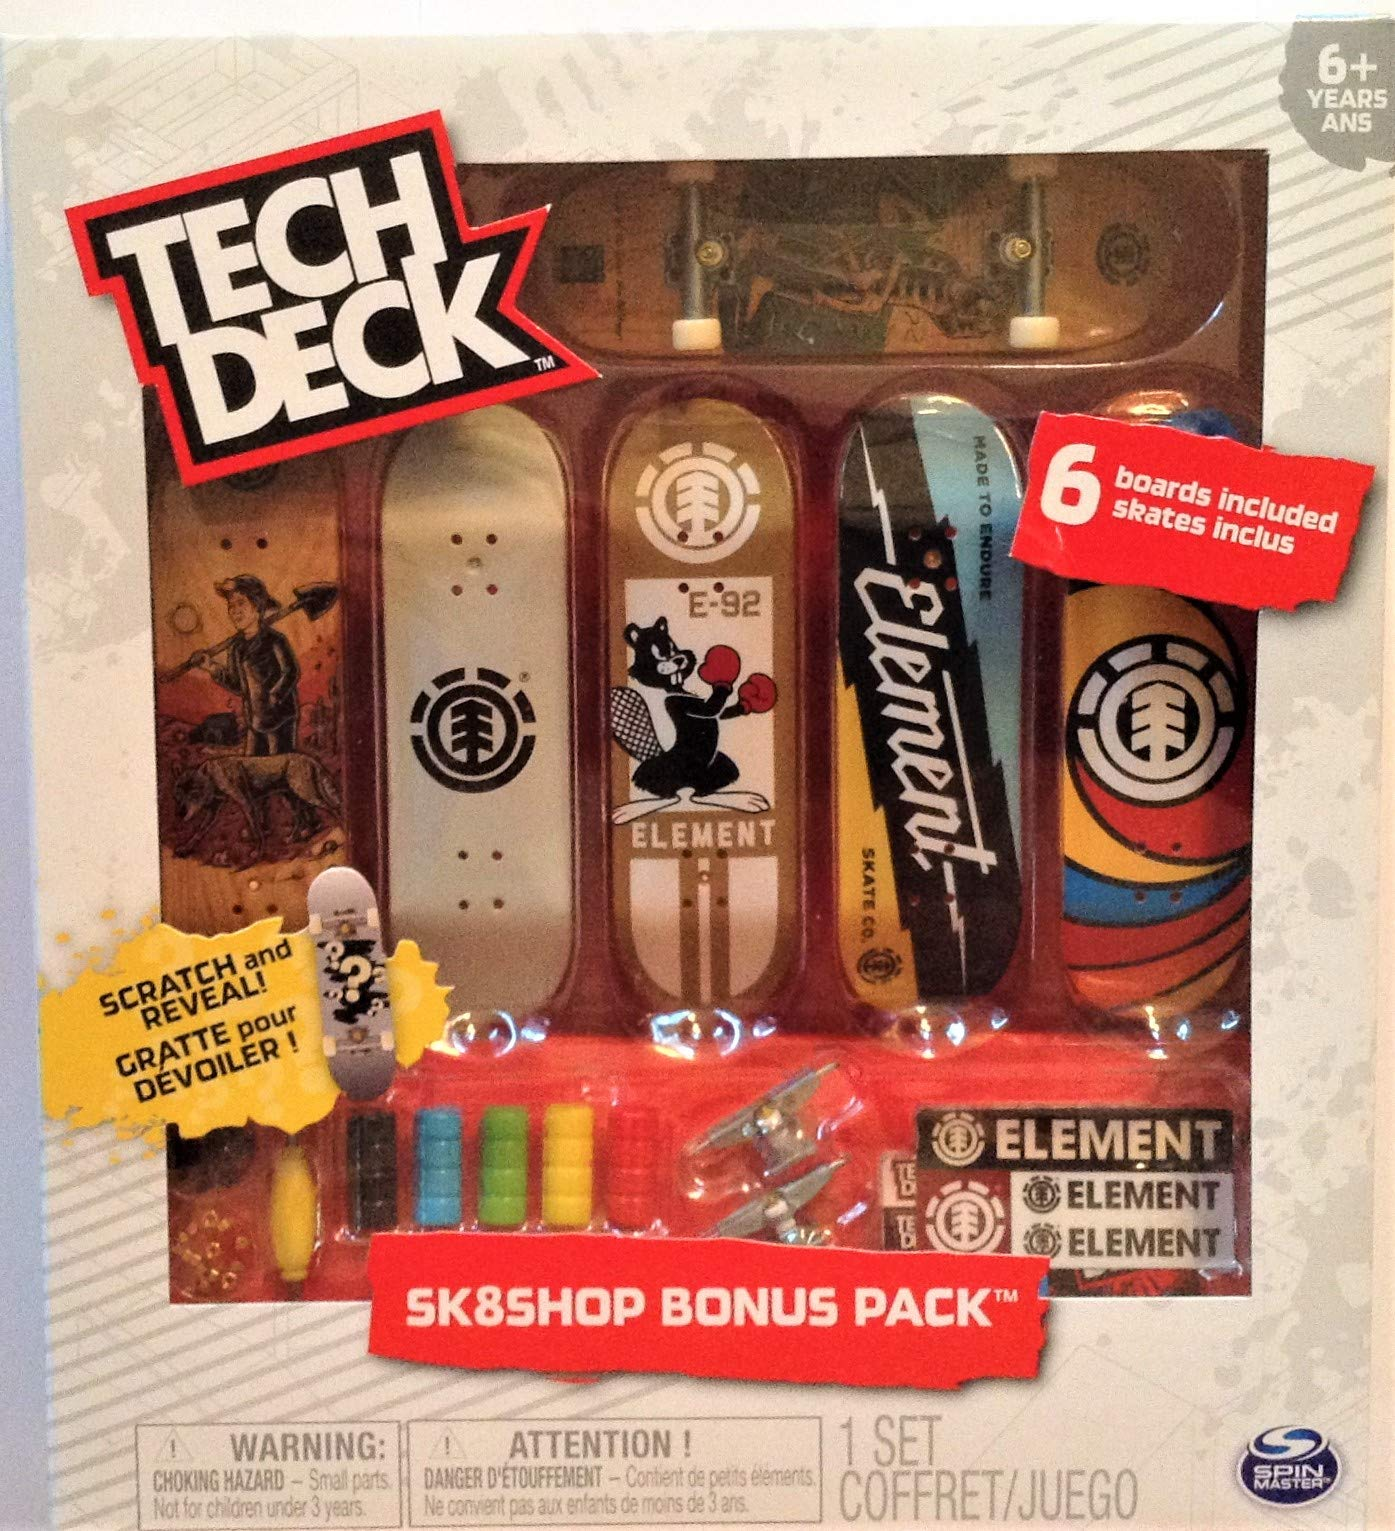 Element Sk8shop Bonus Pack with 6 Fingerboards - 20th Anniversary #20107711